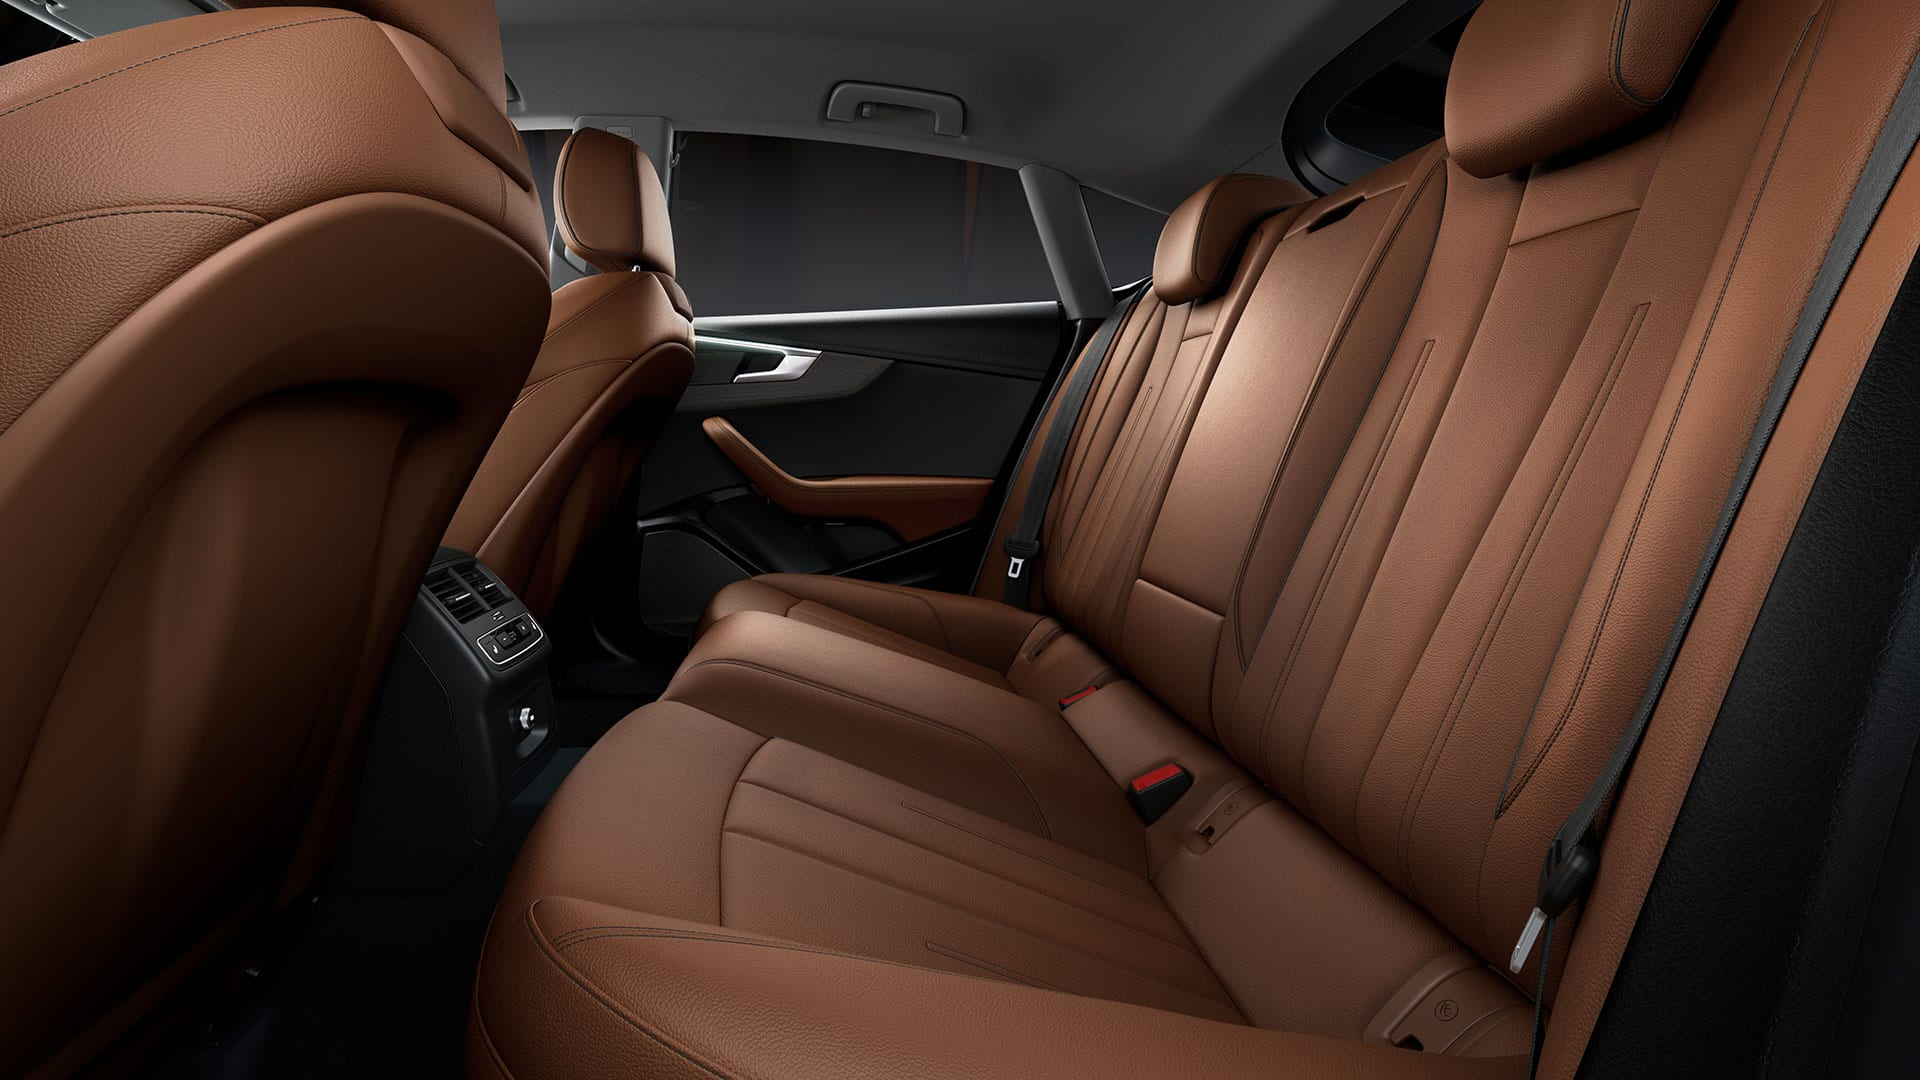 The rear seats of the Audi A5 Sportback g-tron